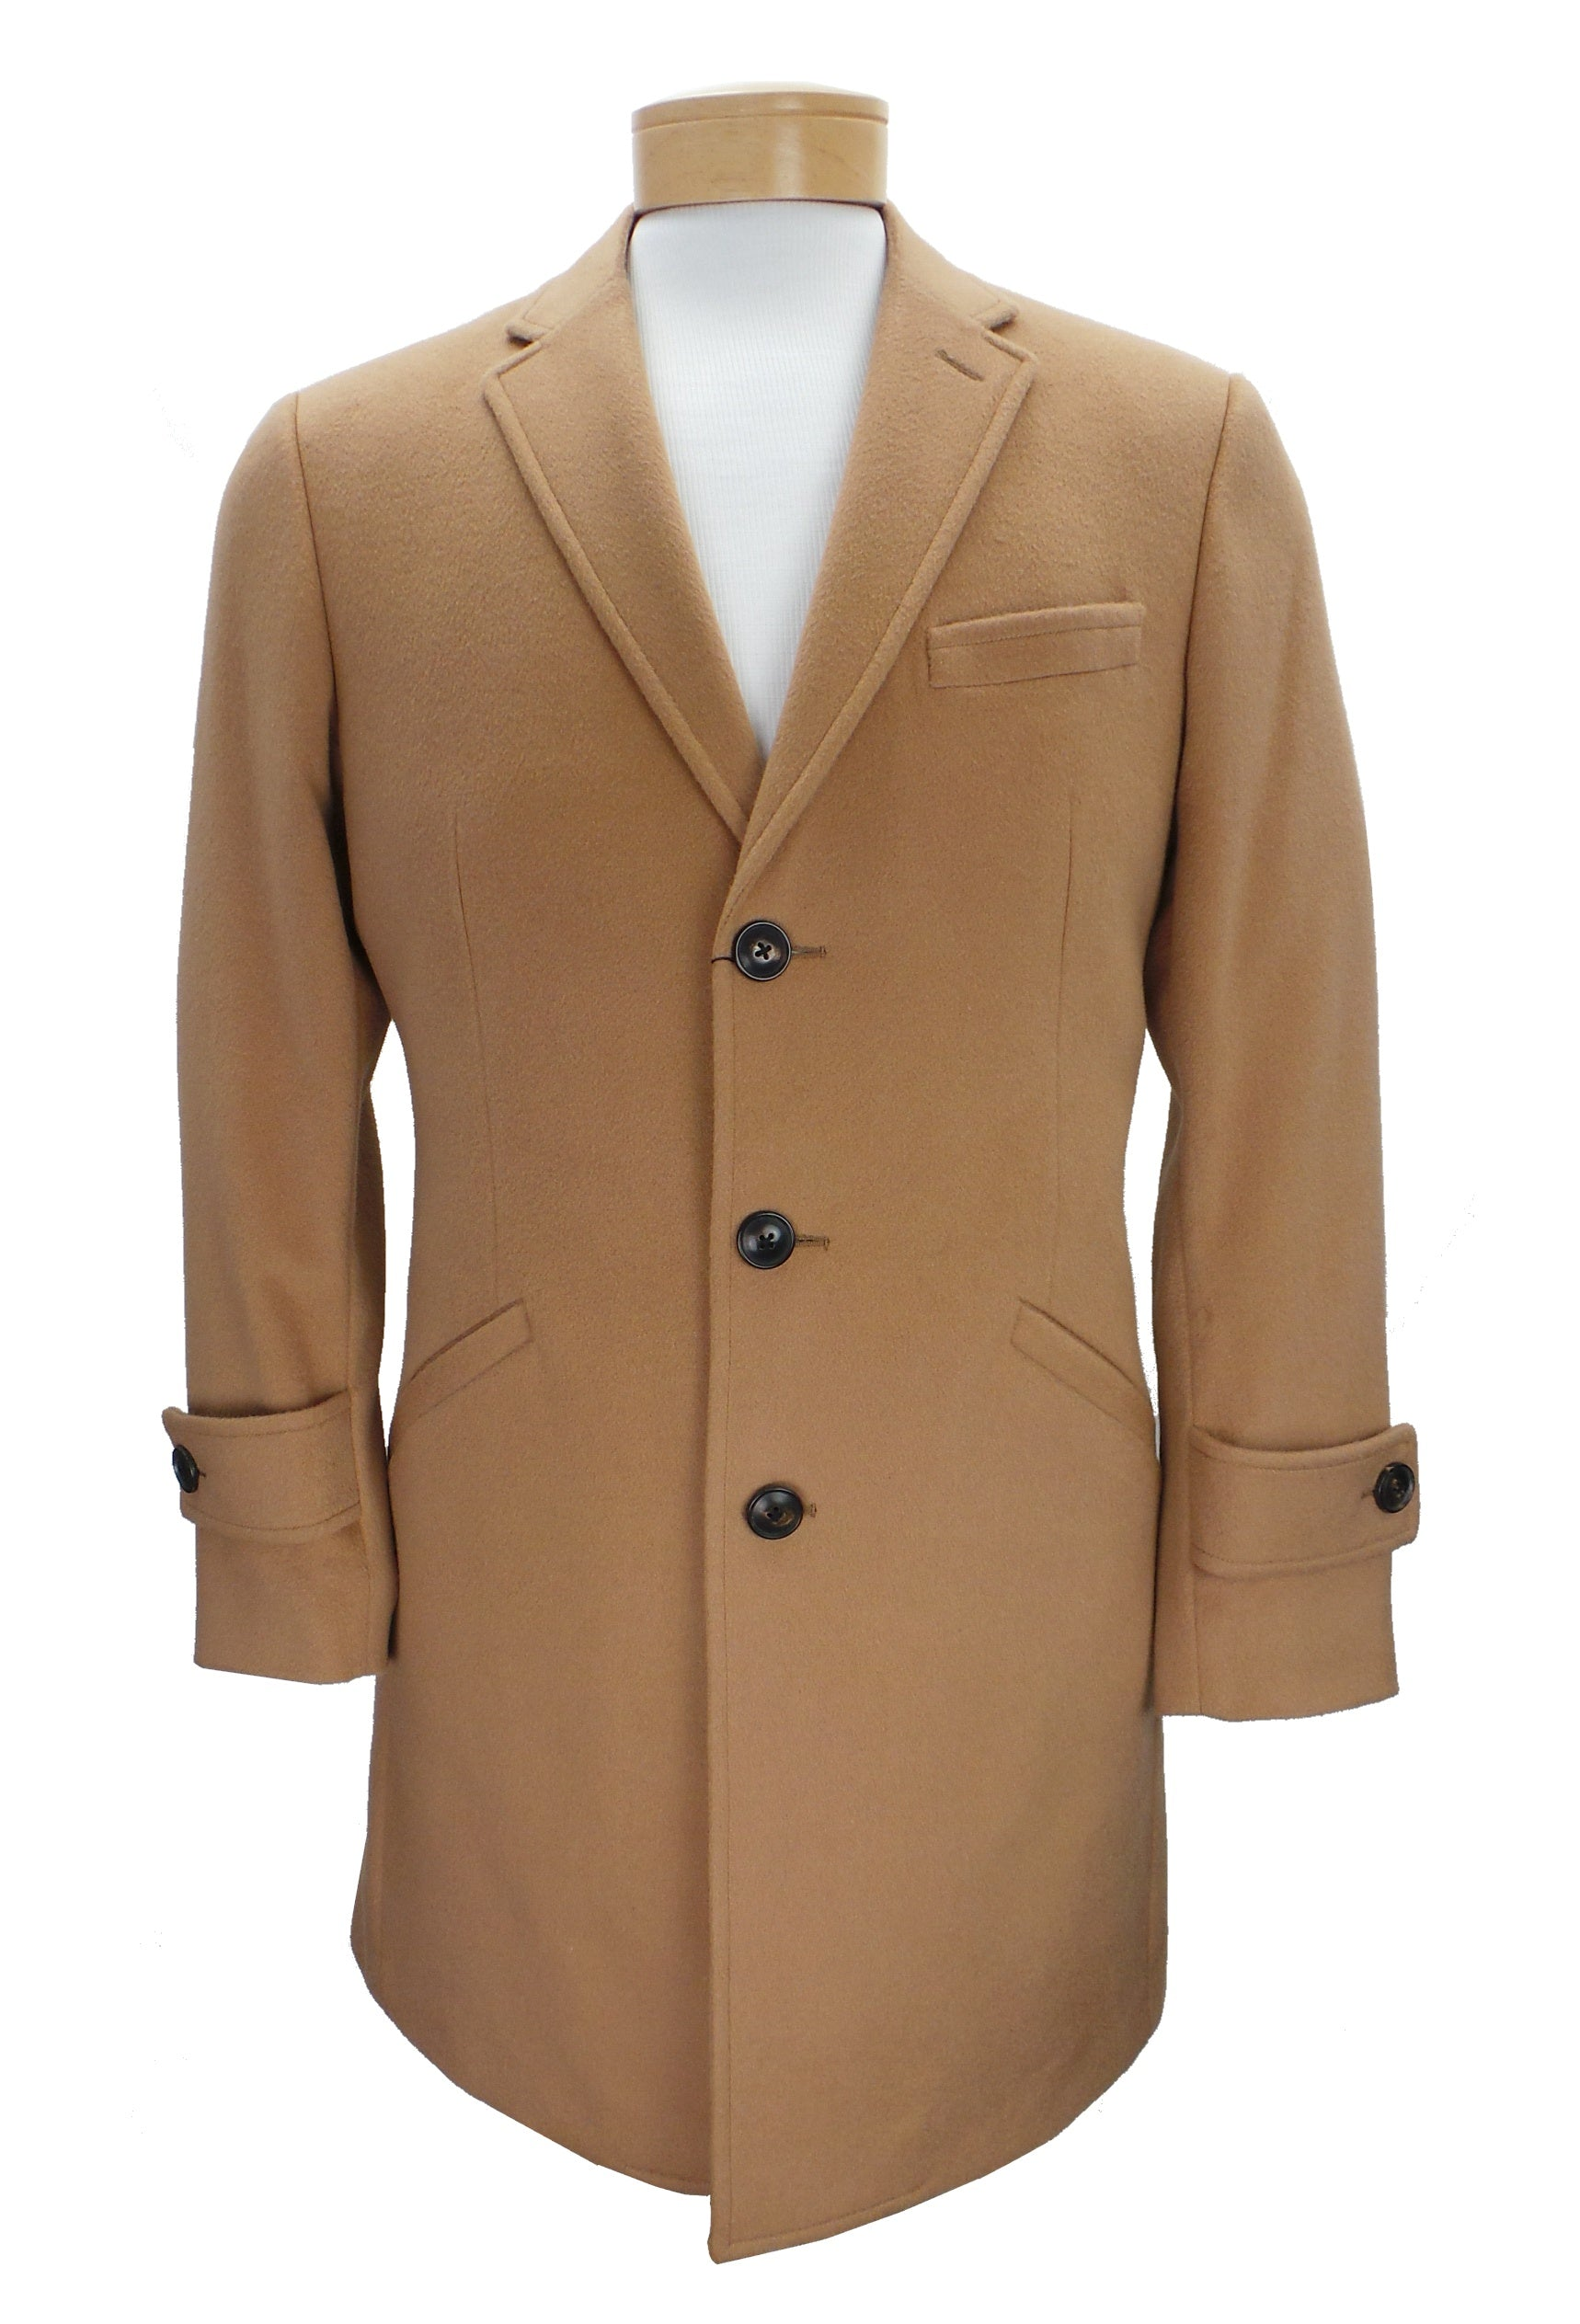 Seattle Thread Company Brushed Soft Wool Car Coat